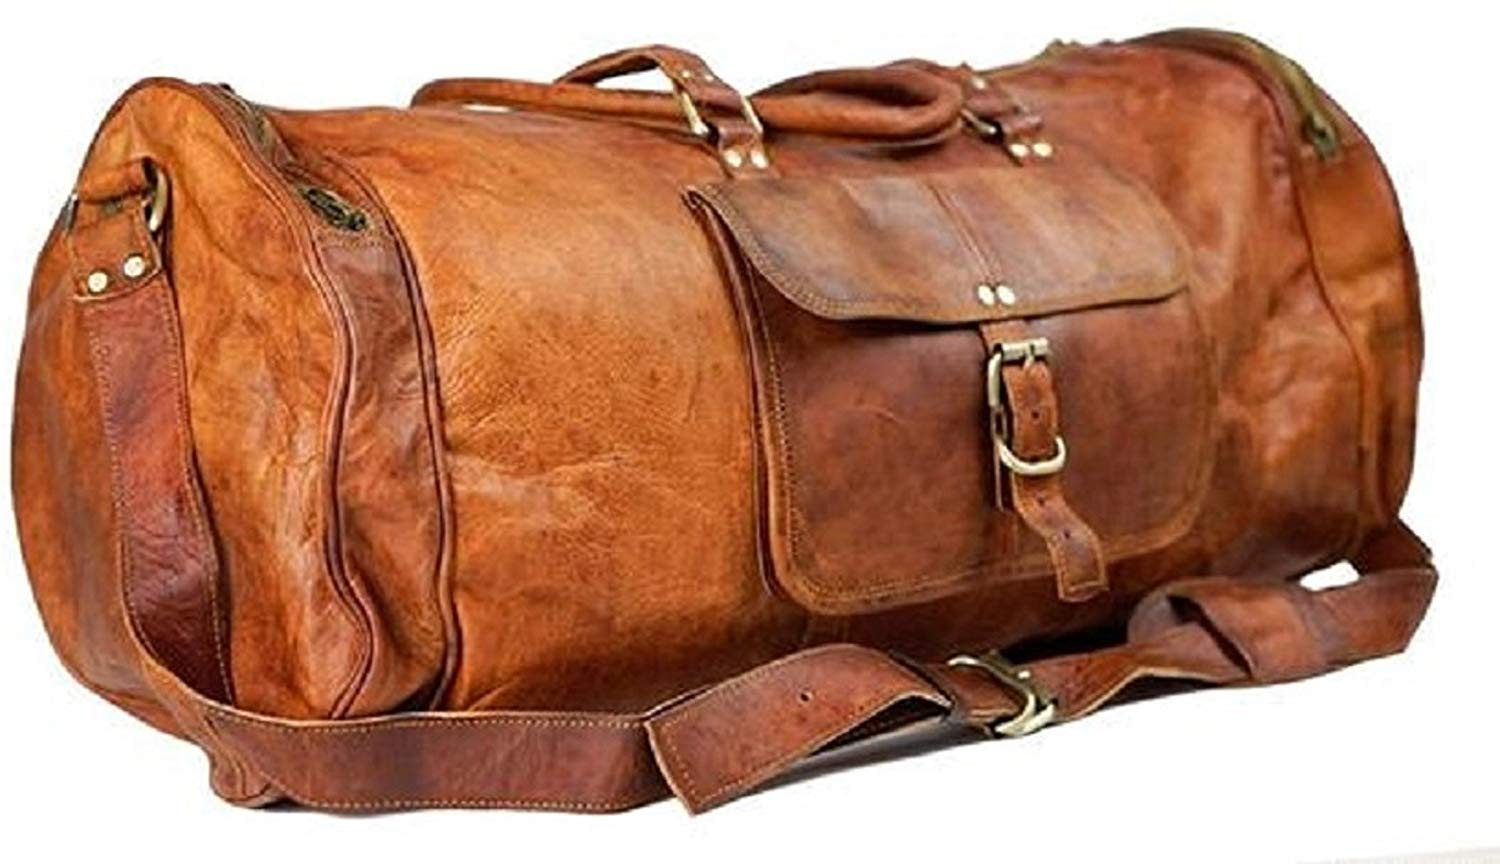 Pure Light-weight Vintage Leather bag 22 inch Duffel Carry Portable Bag (22 inch)